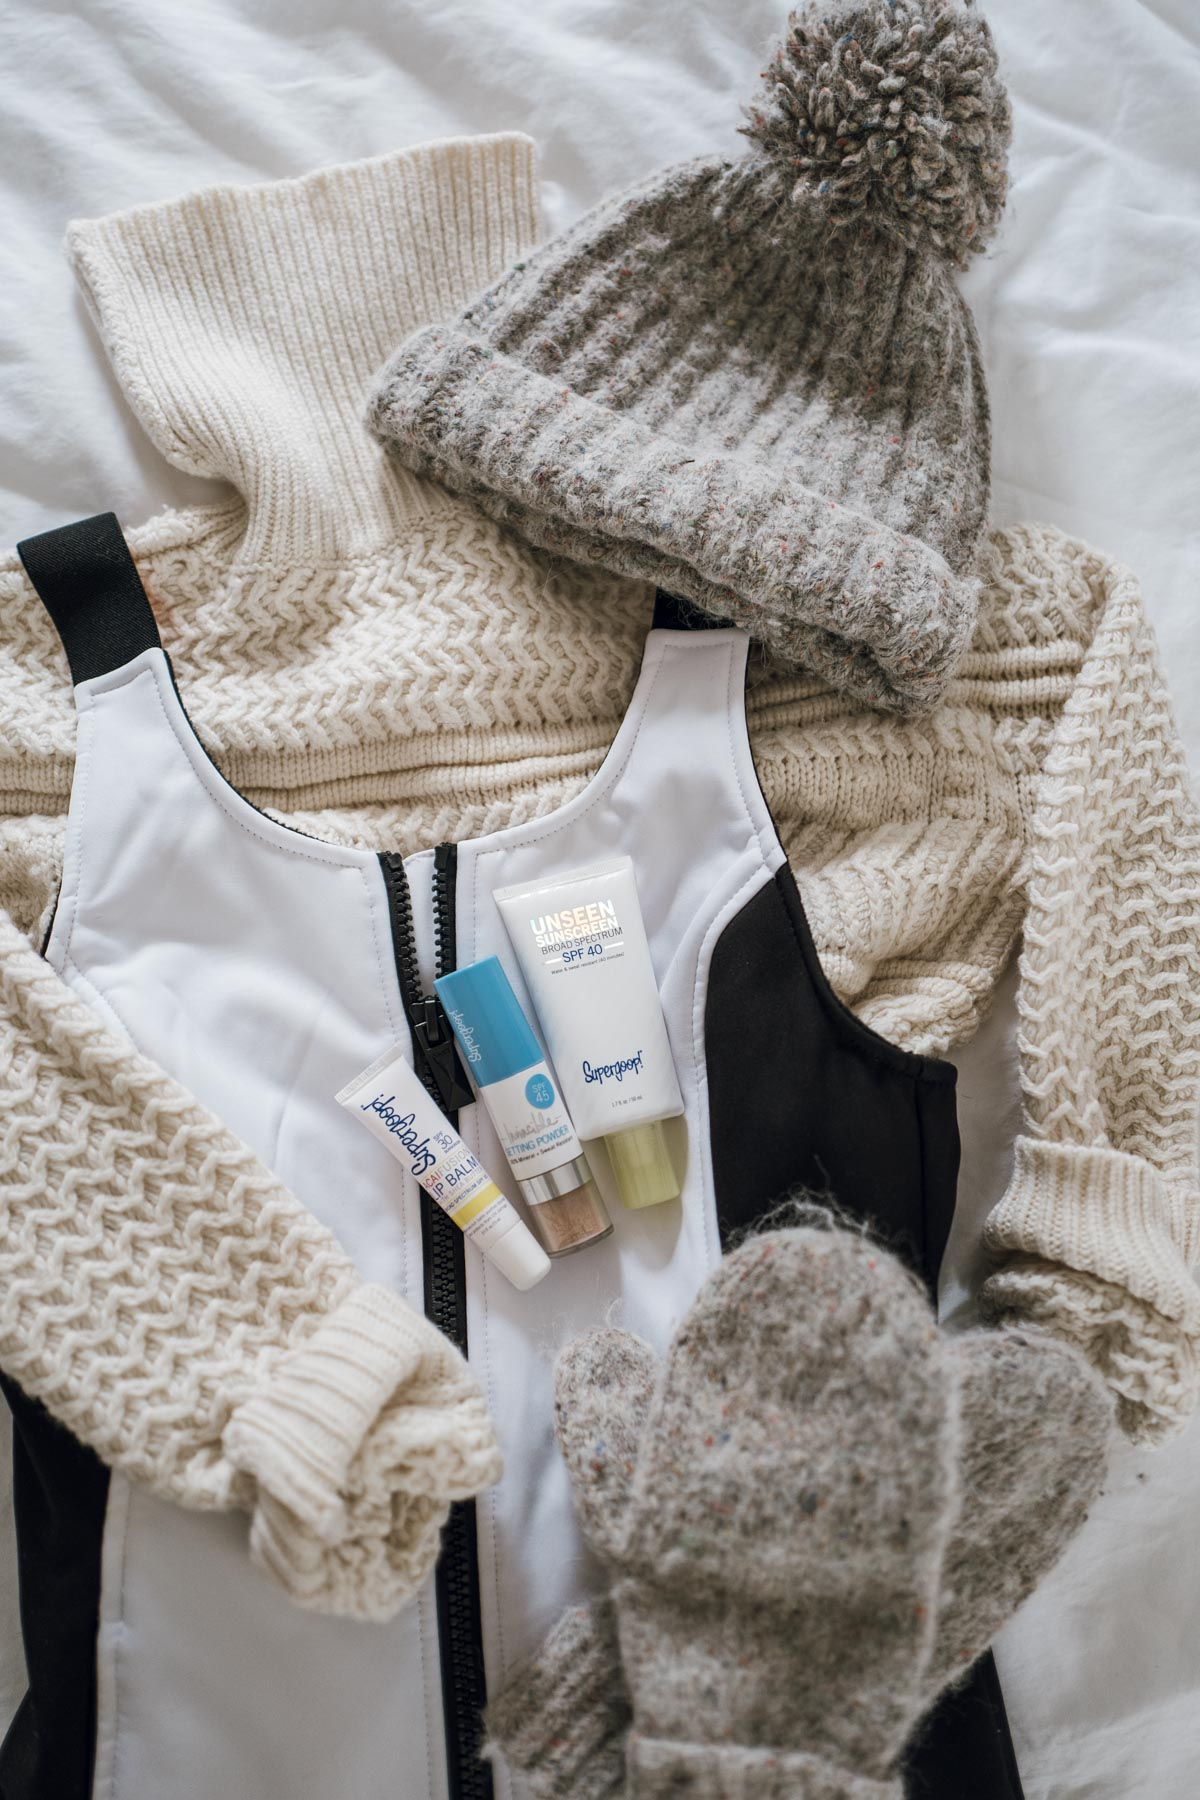 Jess Ann Kirby packs for a trip to Beaver Creek with the essentials including Supergoop! products and the Topshopo Sno snowsuit